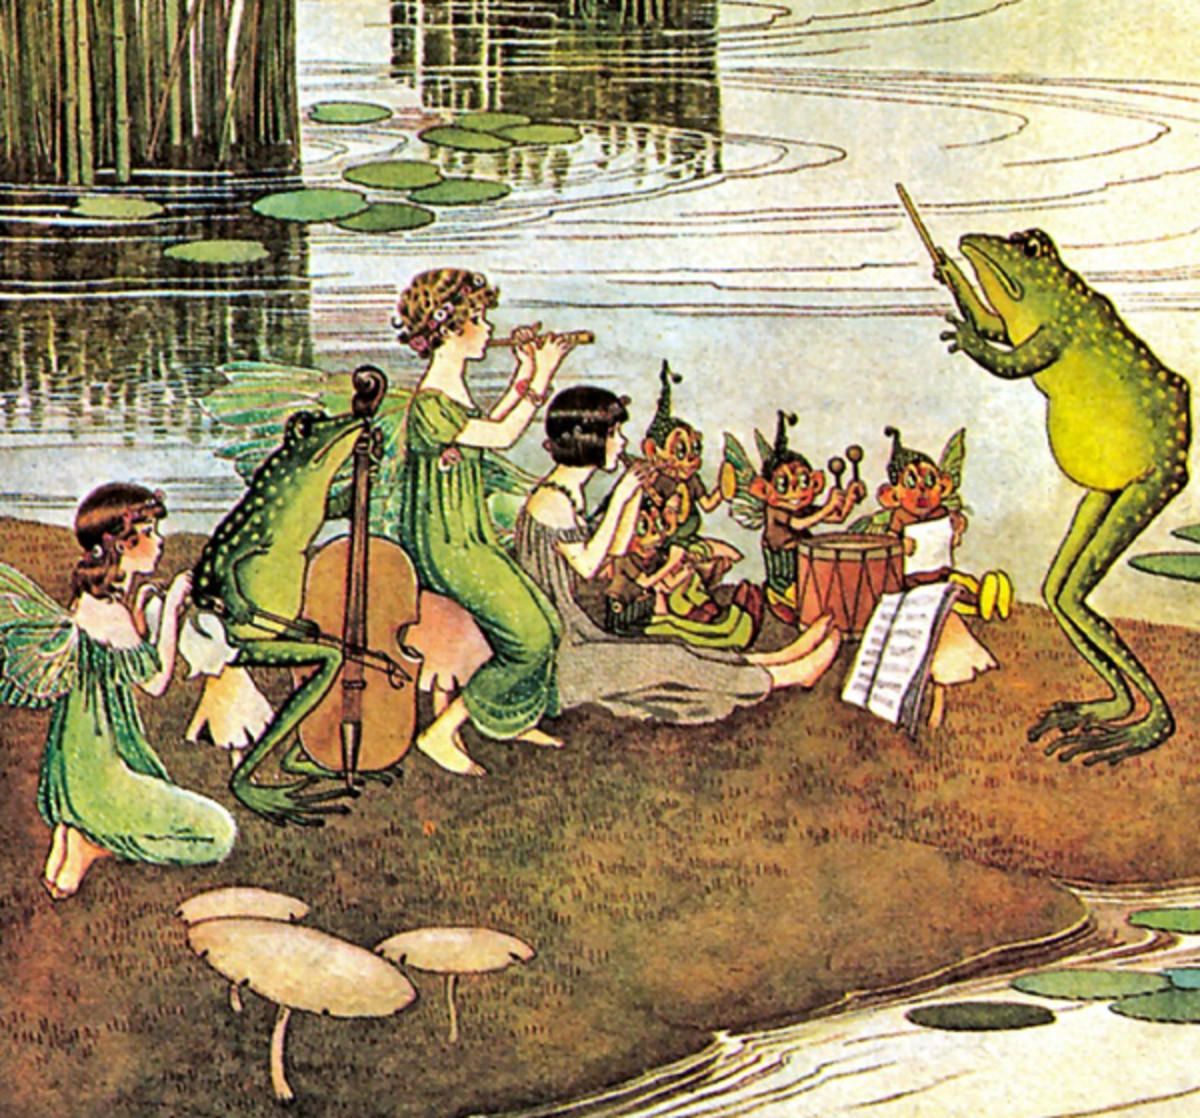 """Here we show a portion of 'The Jazz Band' - it is from Ida Rentoul Outhwaite's suite published in """"The Enchanted Forest"""" (1921)."""